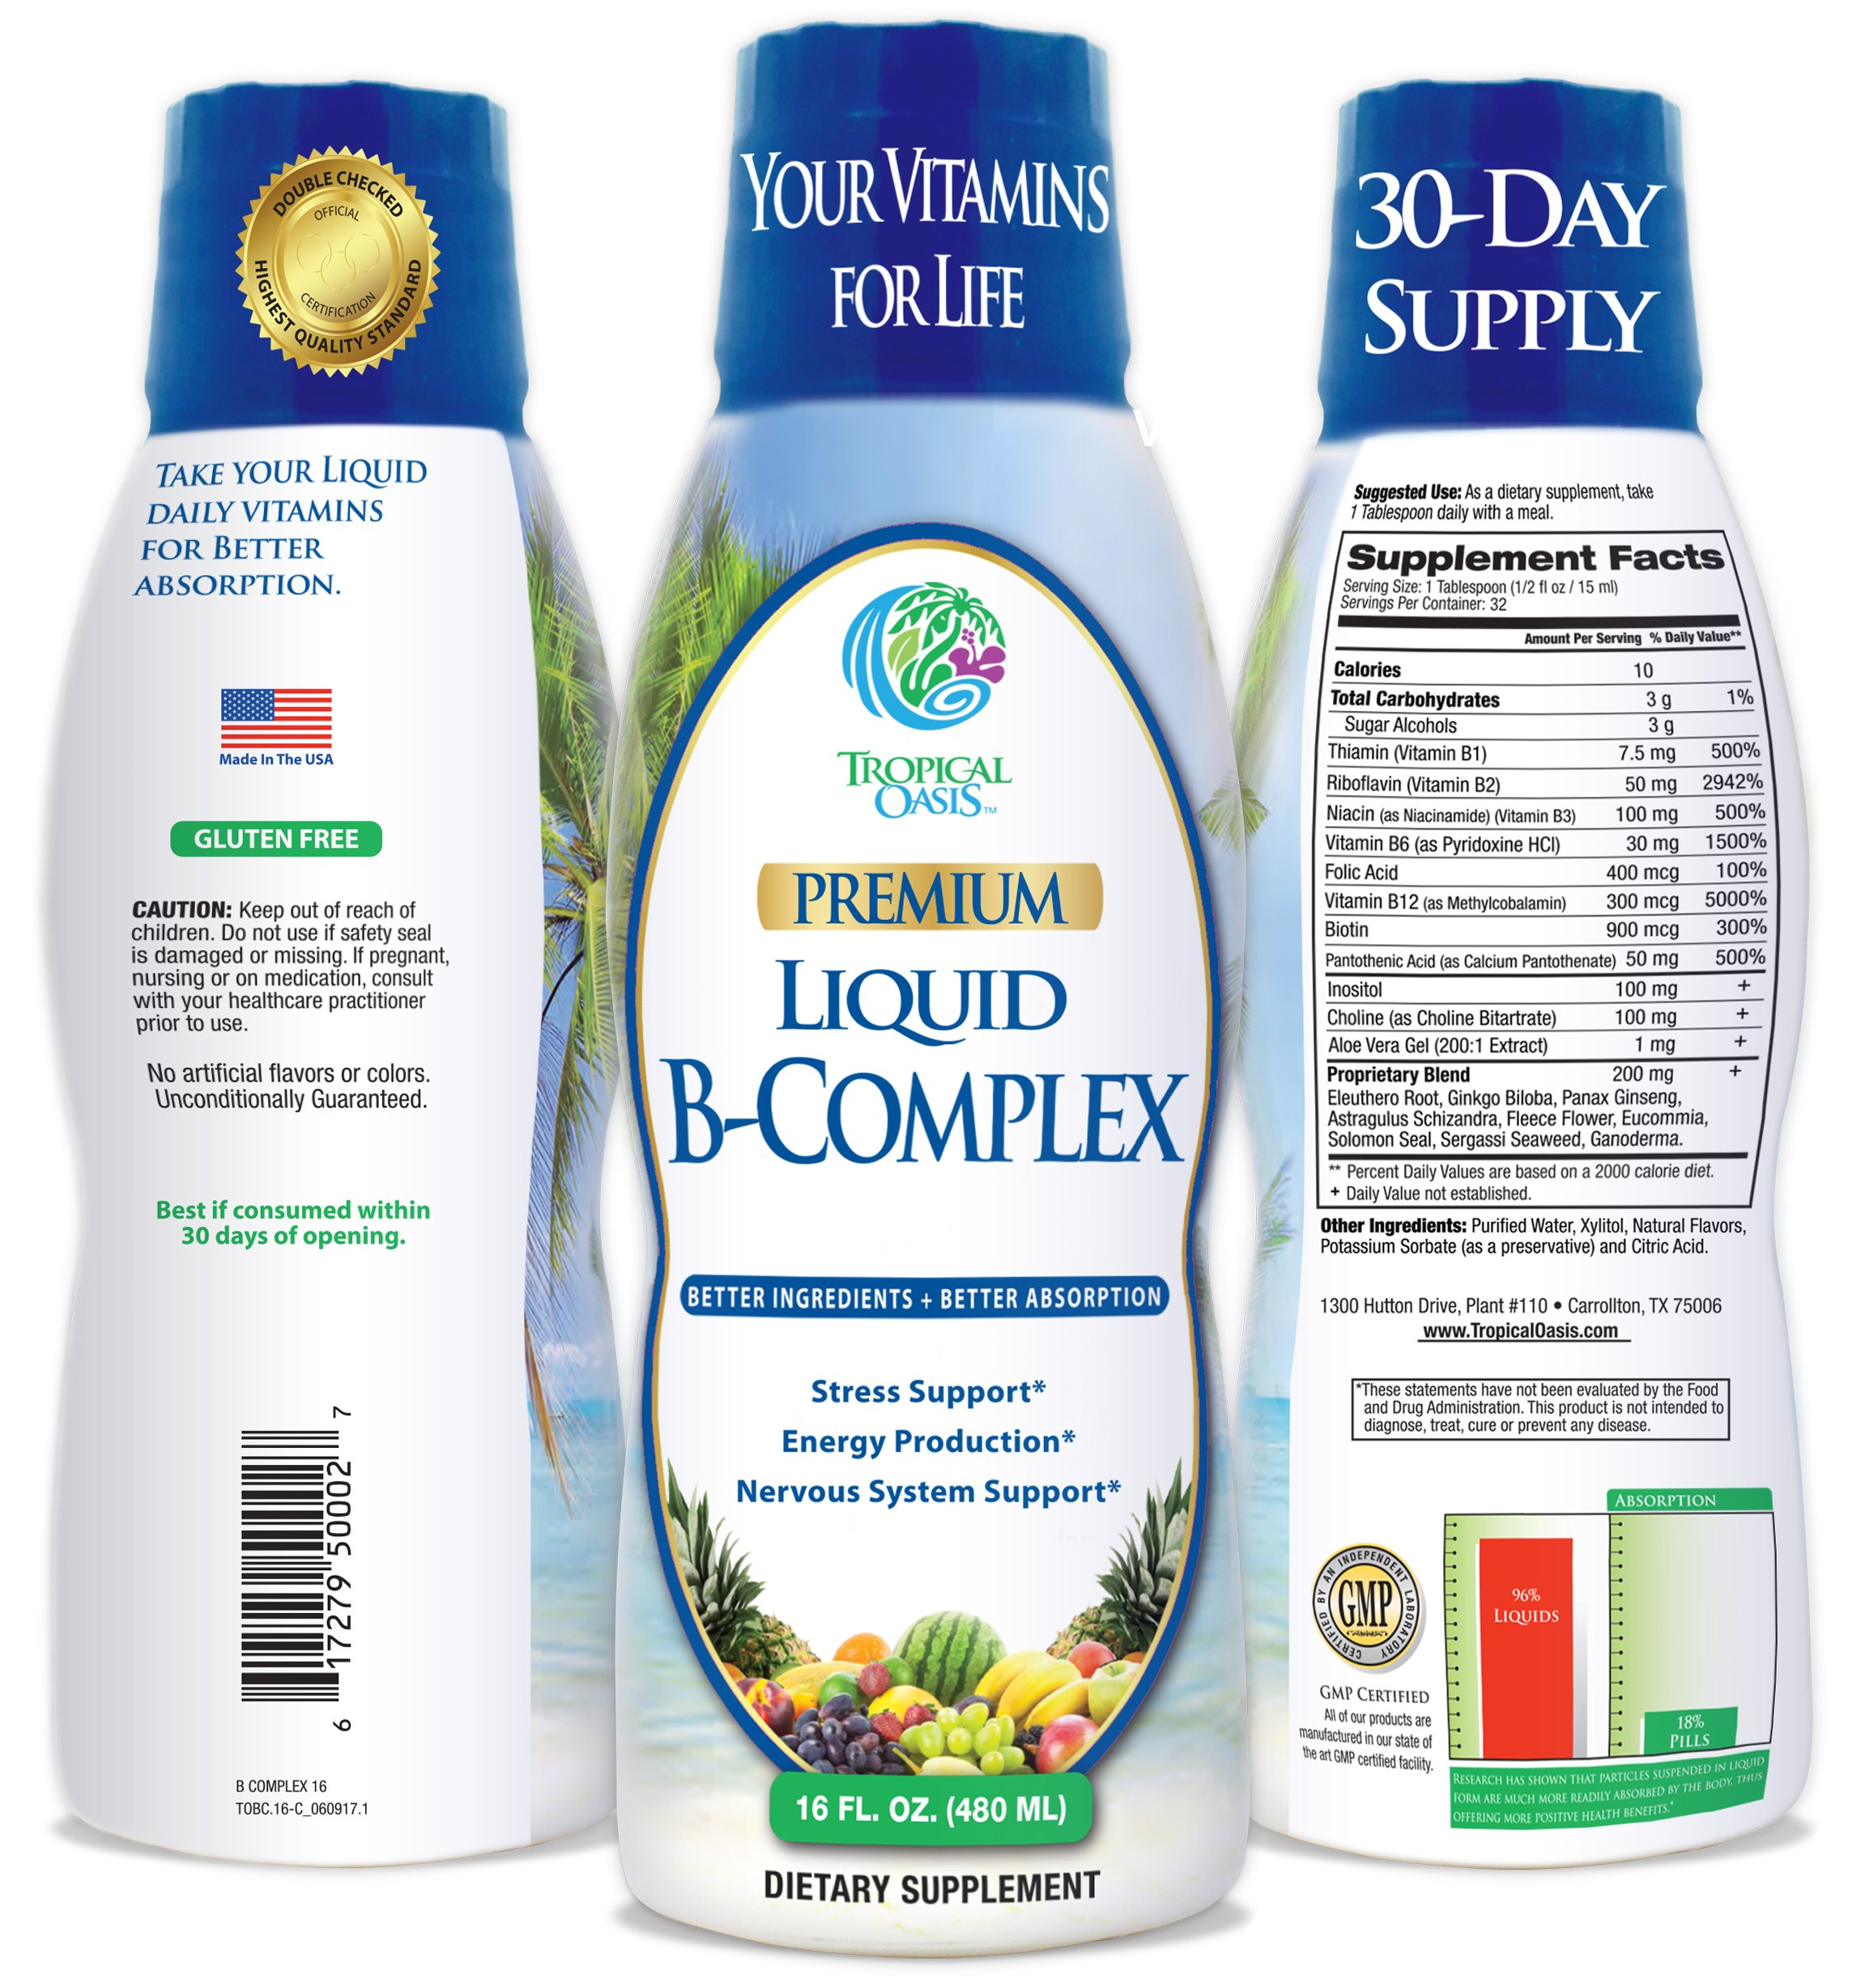 Premium Liquid B Complex Vitamin- Fast Absorbing Liquid B-Complex Supplement w/ all 8 B-vitamins, PLUS energizing herbal blend w/ Ginseng, Ginkgo, and Eleuthero Root - Vegan, NON-GMO - 16oz, 32 Serv